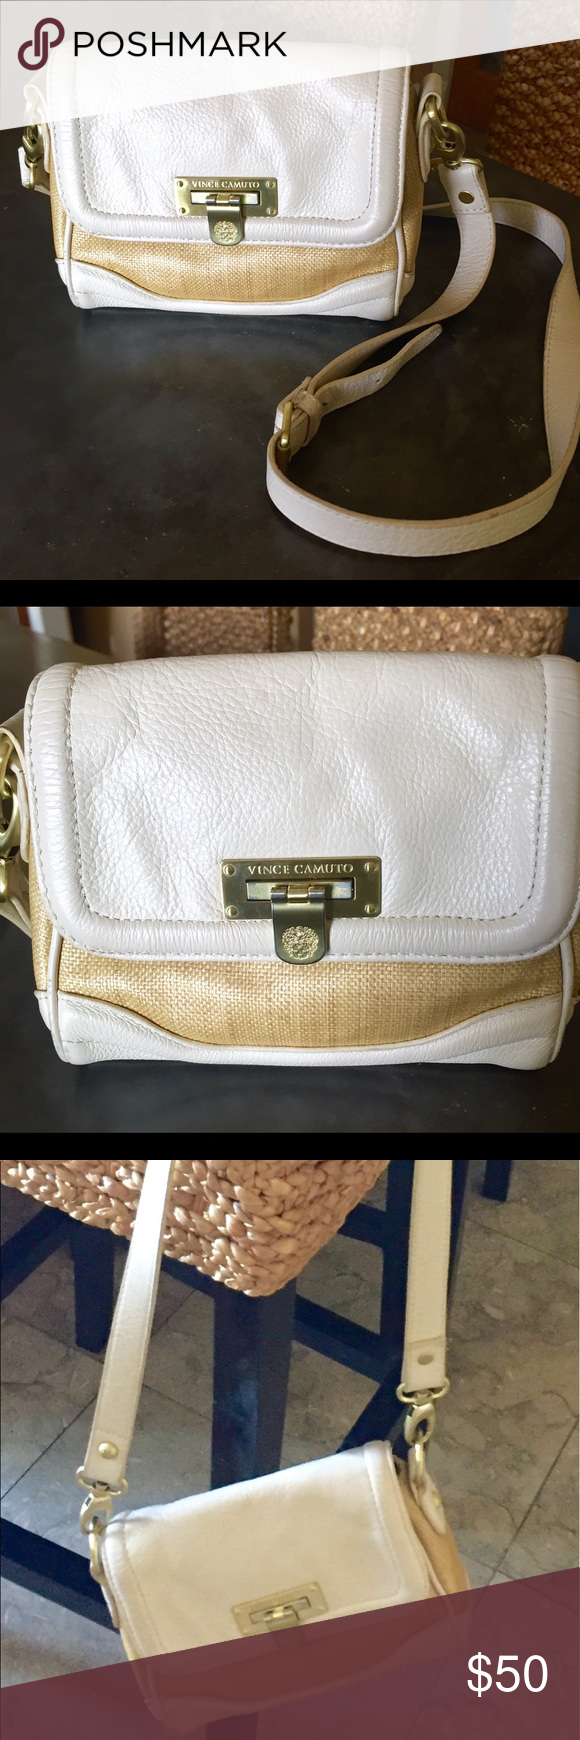 On Sale!! Vince Camuto tan straw prfct summer bag Darling long shoulder bag sm  cross body Vince Camuto bag tan and cream in tan straw look with cream ... bae50ddbf0b8d